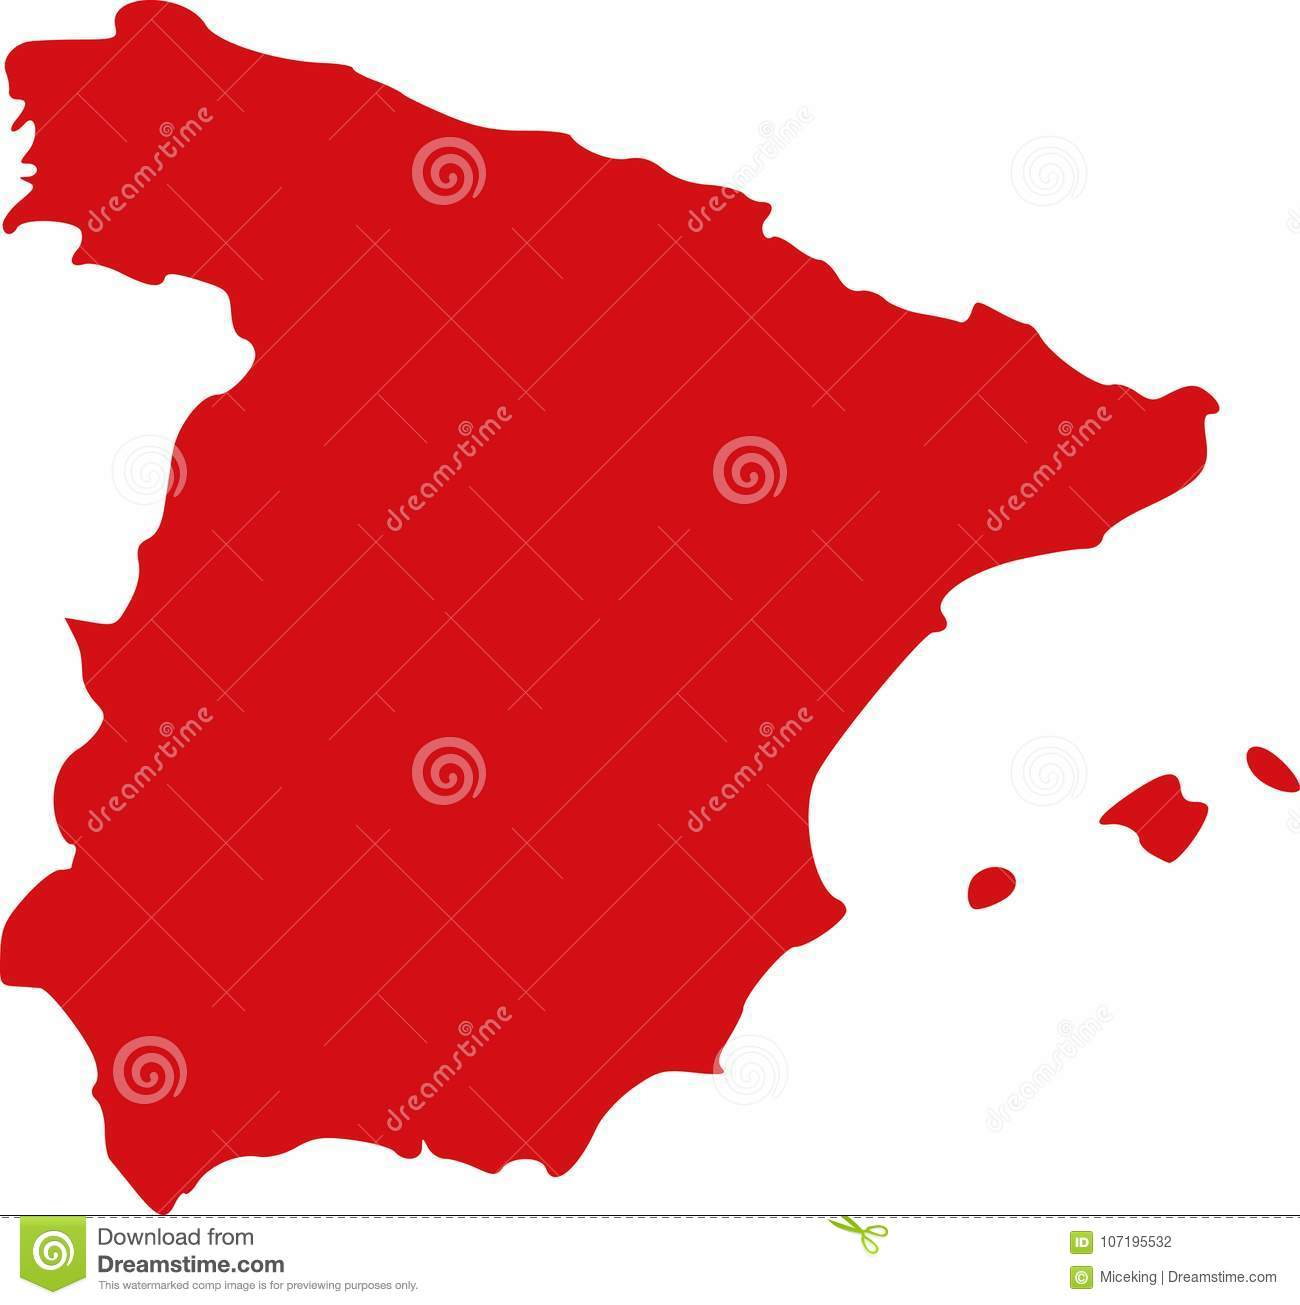 Spain On A Map Of Europe.Spain Map Europe Stock Vector Illustration Of Vector 107195532